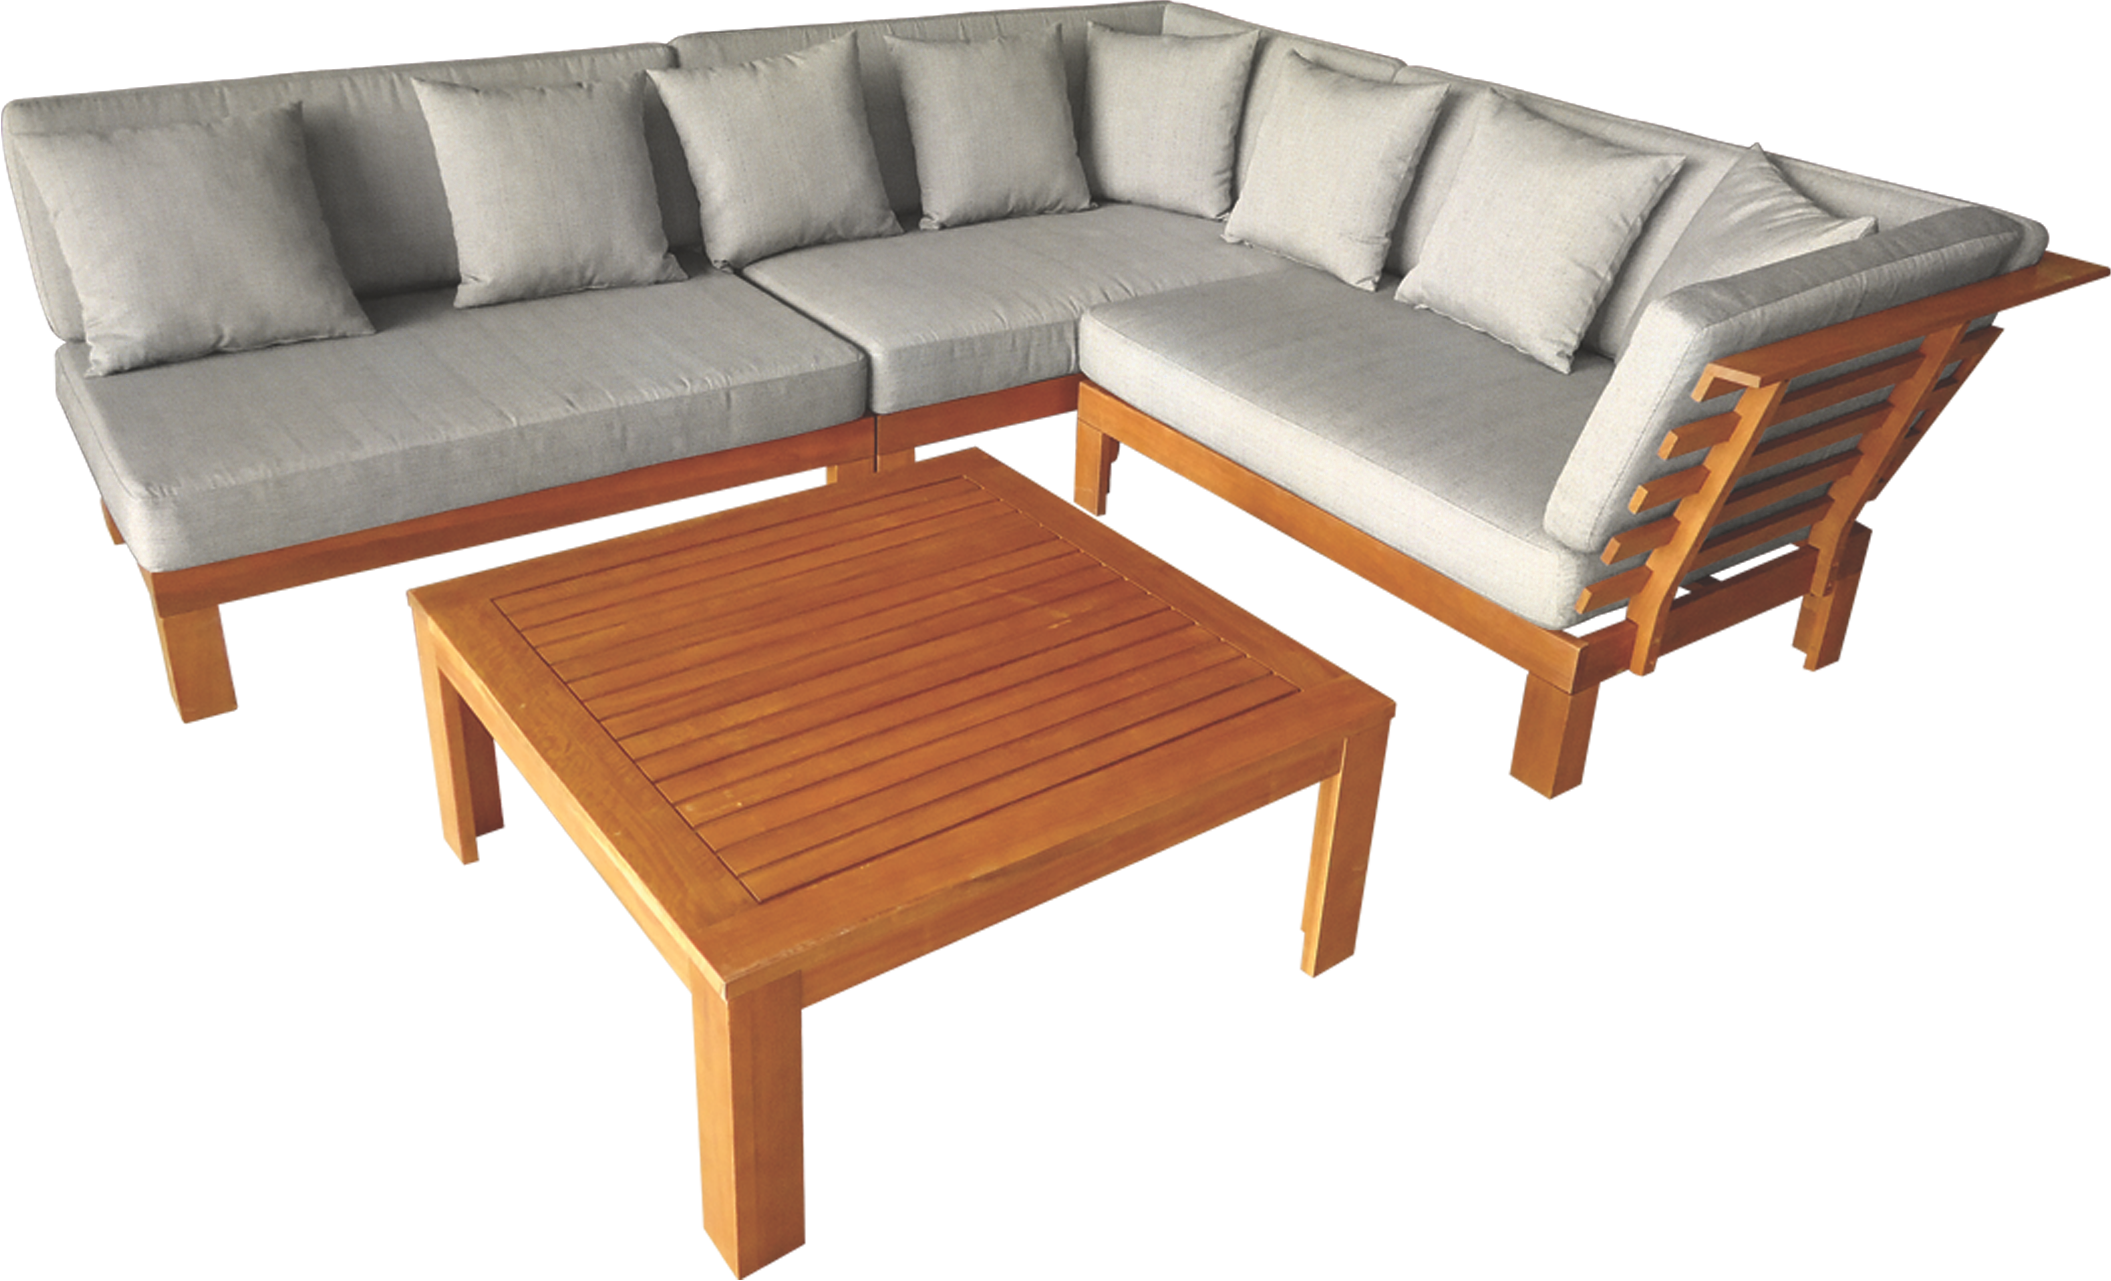 Mimosa 4 piece coogee timber corner lounge setting with cushions bunnings warehouse beer garden